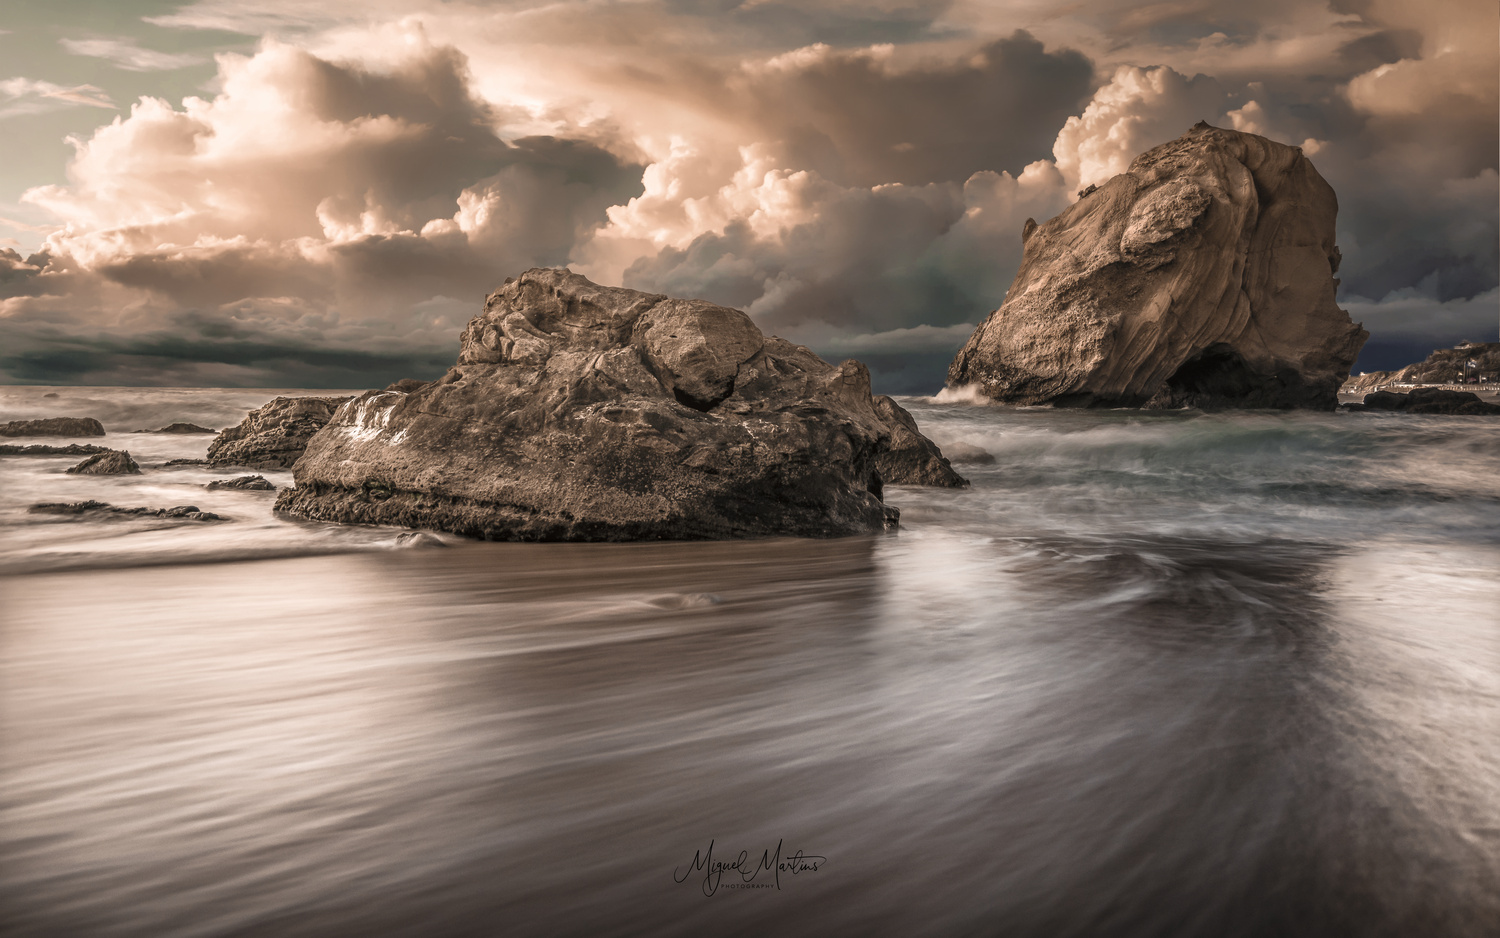 Last Light by Miguel Martins